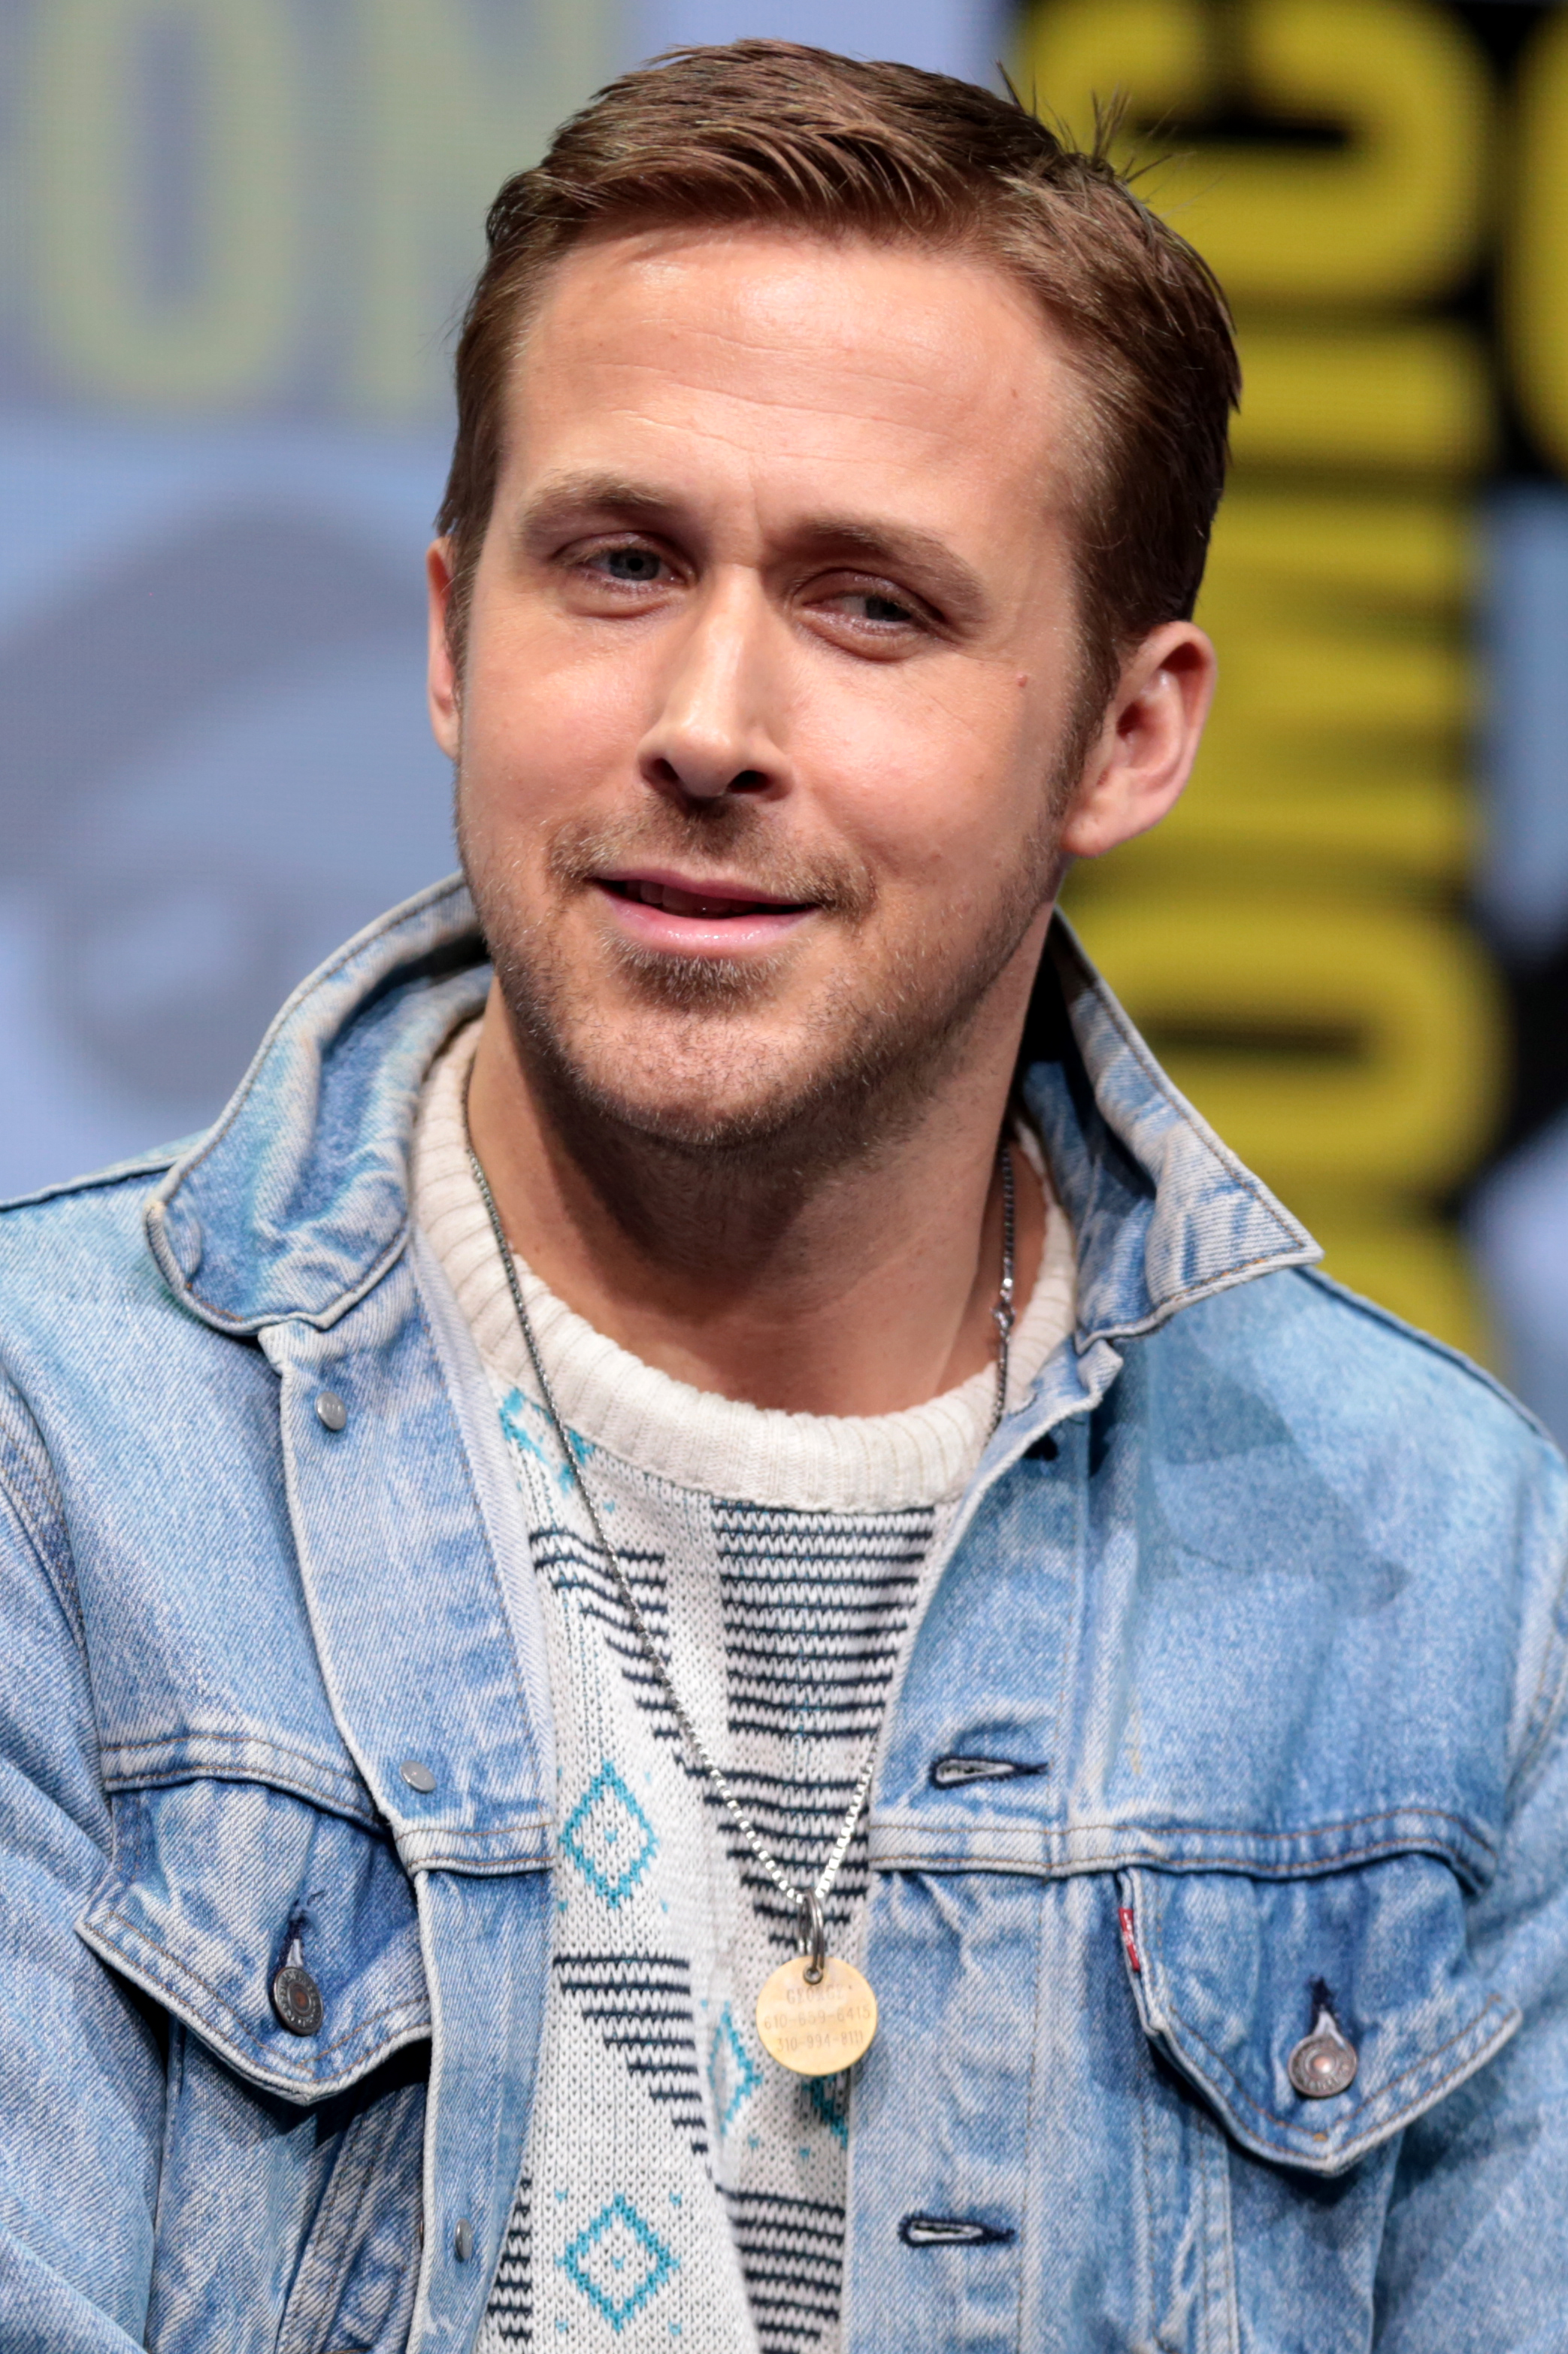 File:Ryan Gosling 2017 crop.jpg - Wikimedia Commons